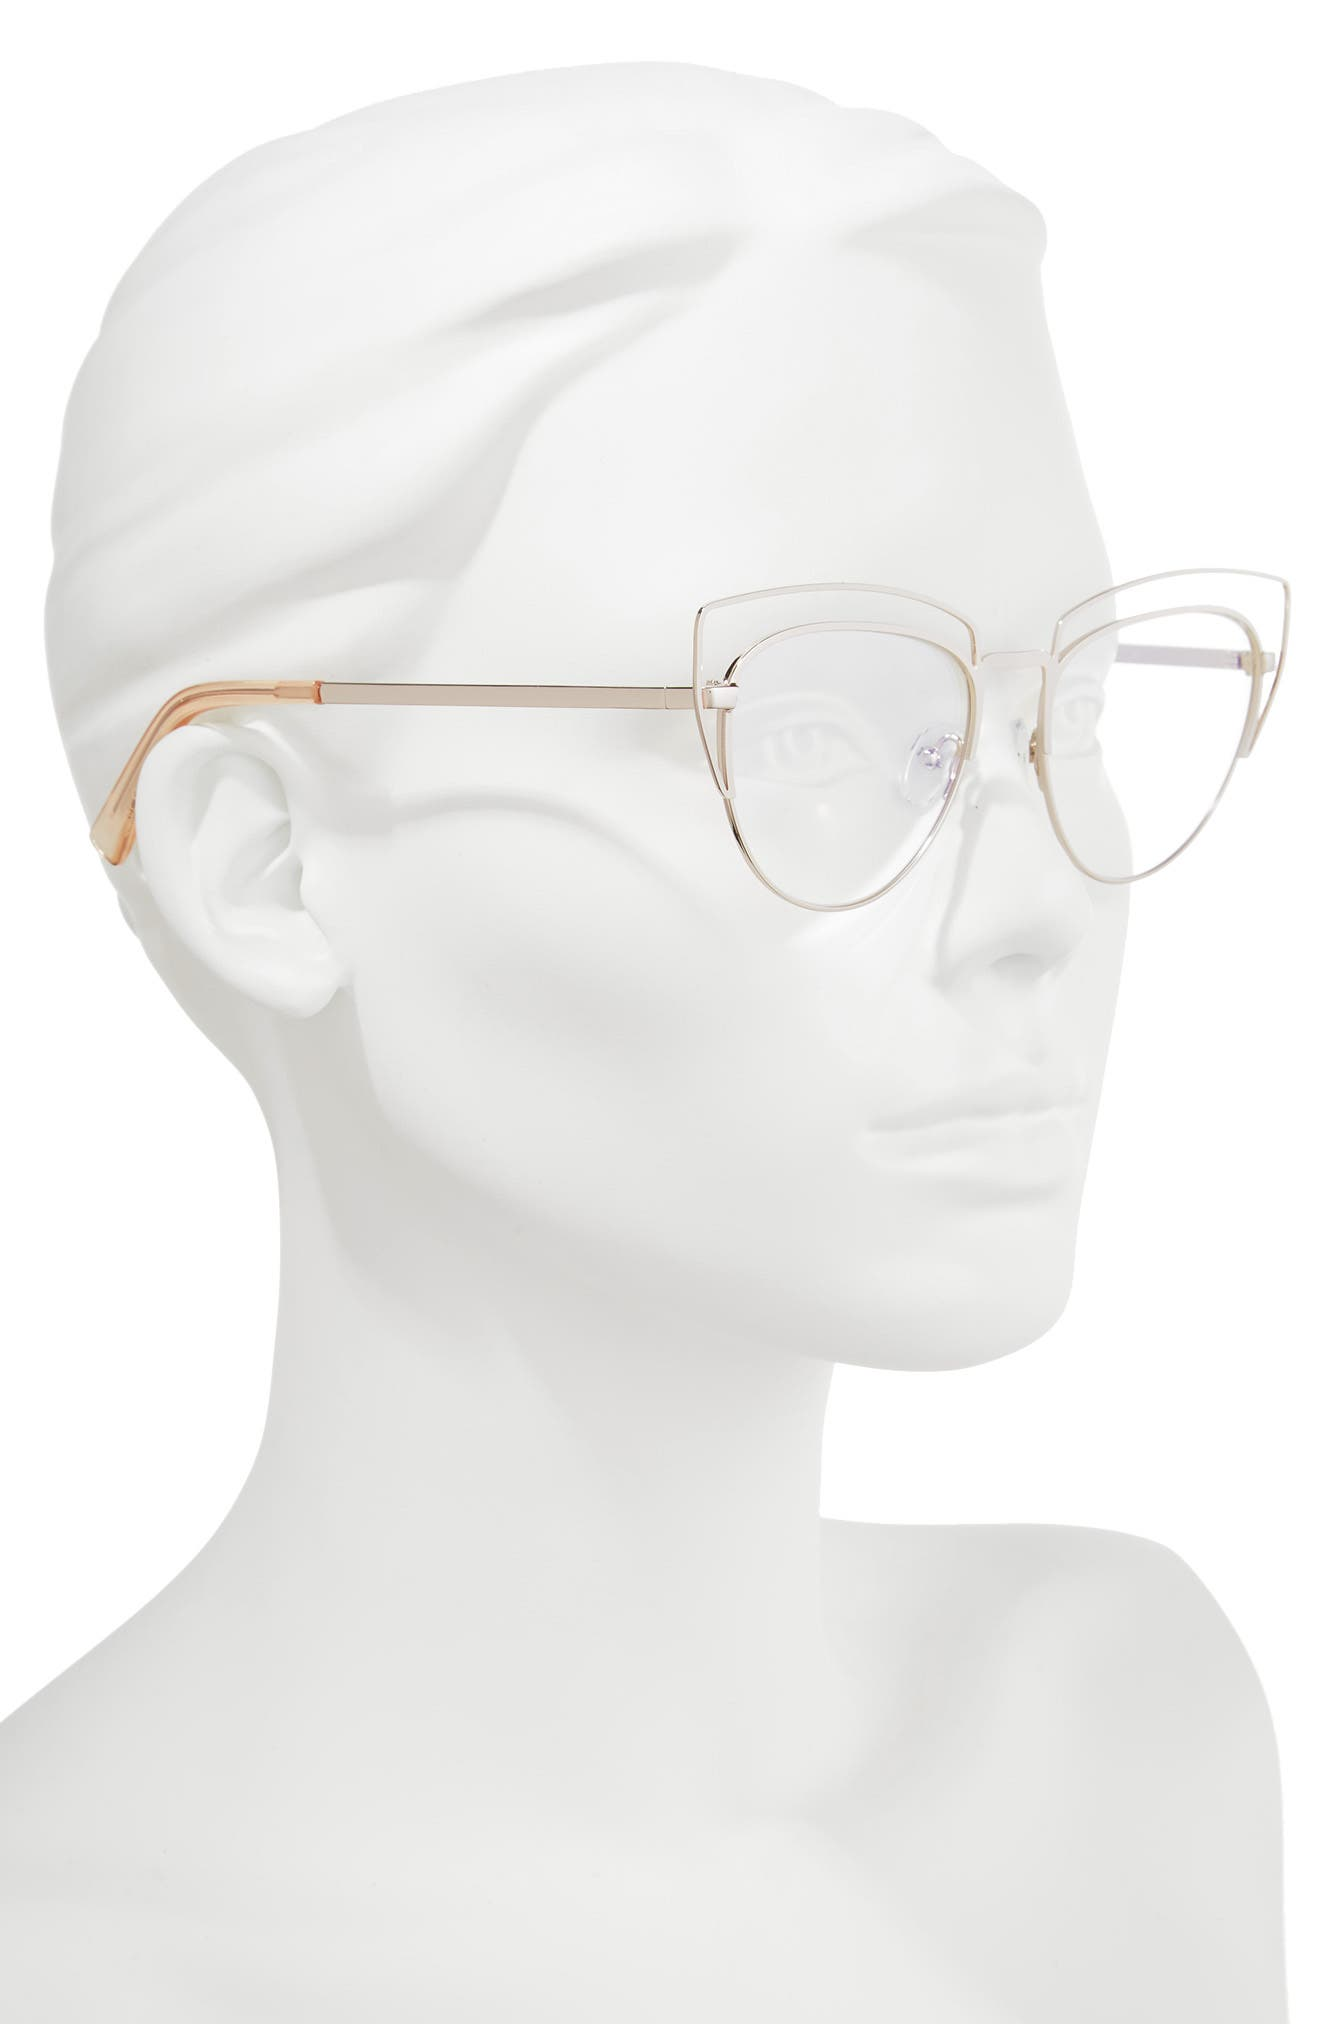 One Hundred Beers Of Solitude 52mm Reading Glasses,                             Alternate thumbnail 2, color,                             Rose Gold